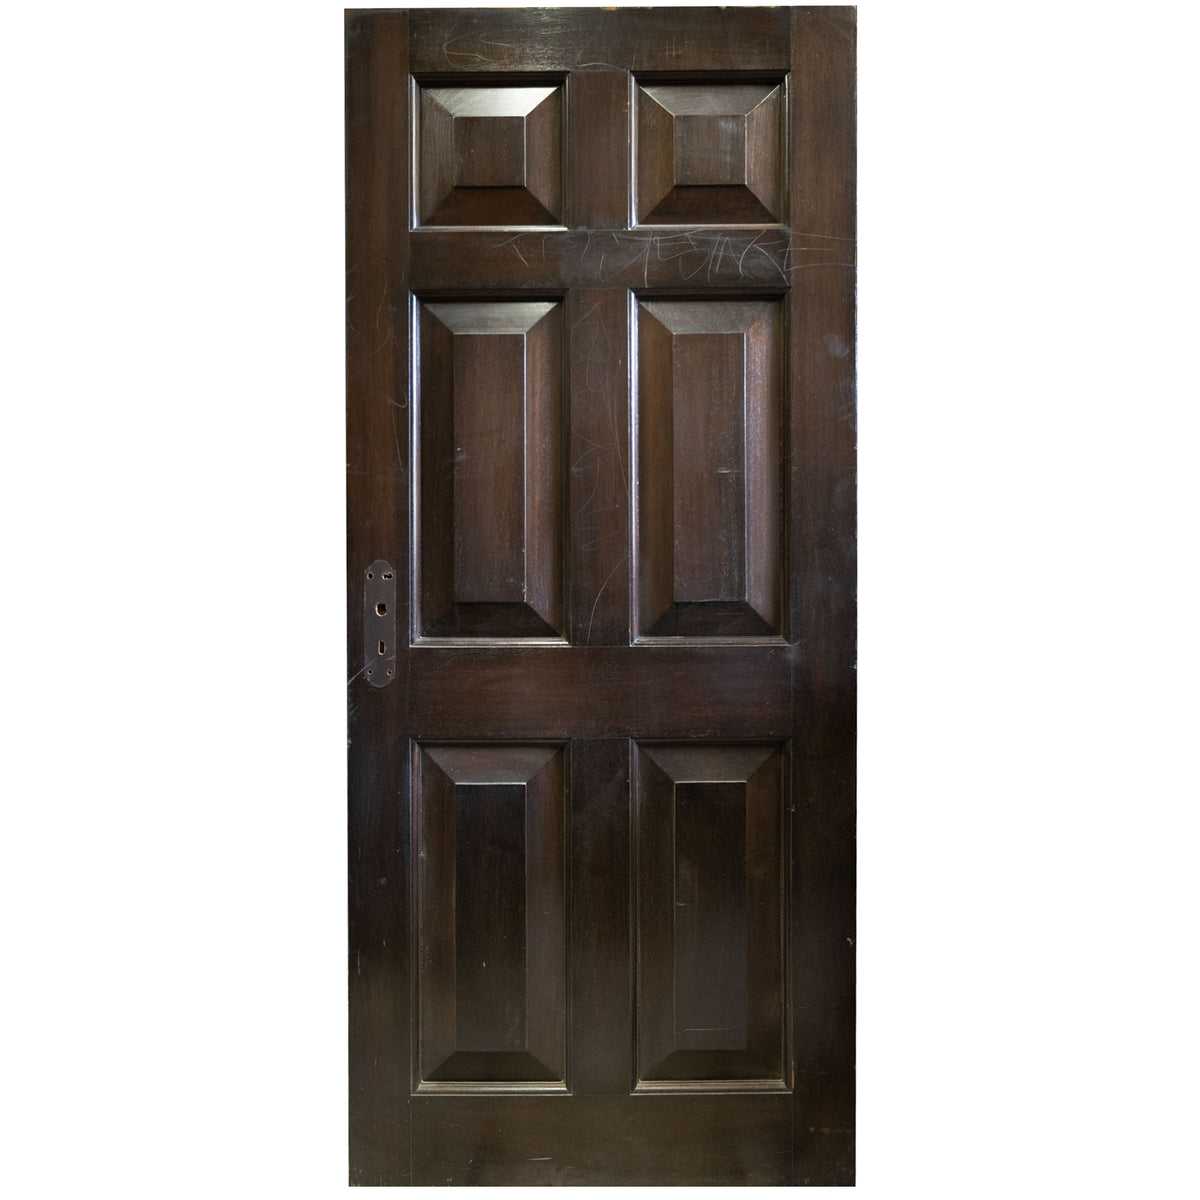 Reclaimed Solid Mahogany Six Panel Door 196 X 83.5cm (15 available) | The Architectural Forum